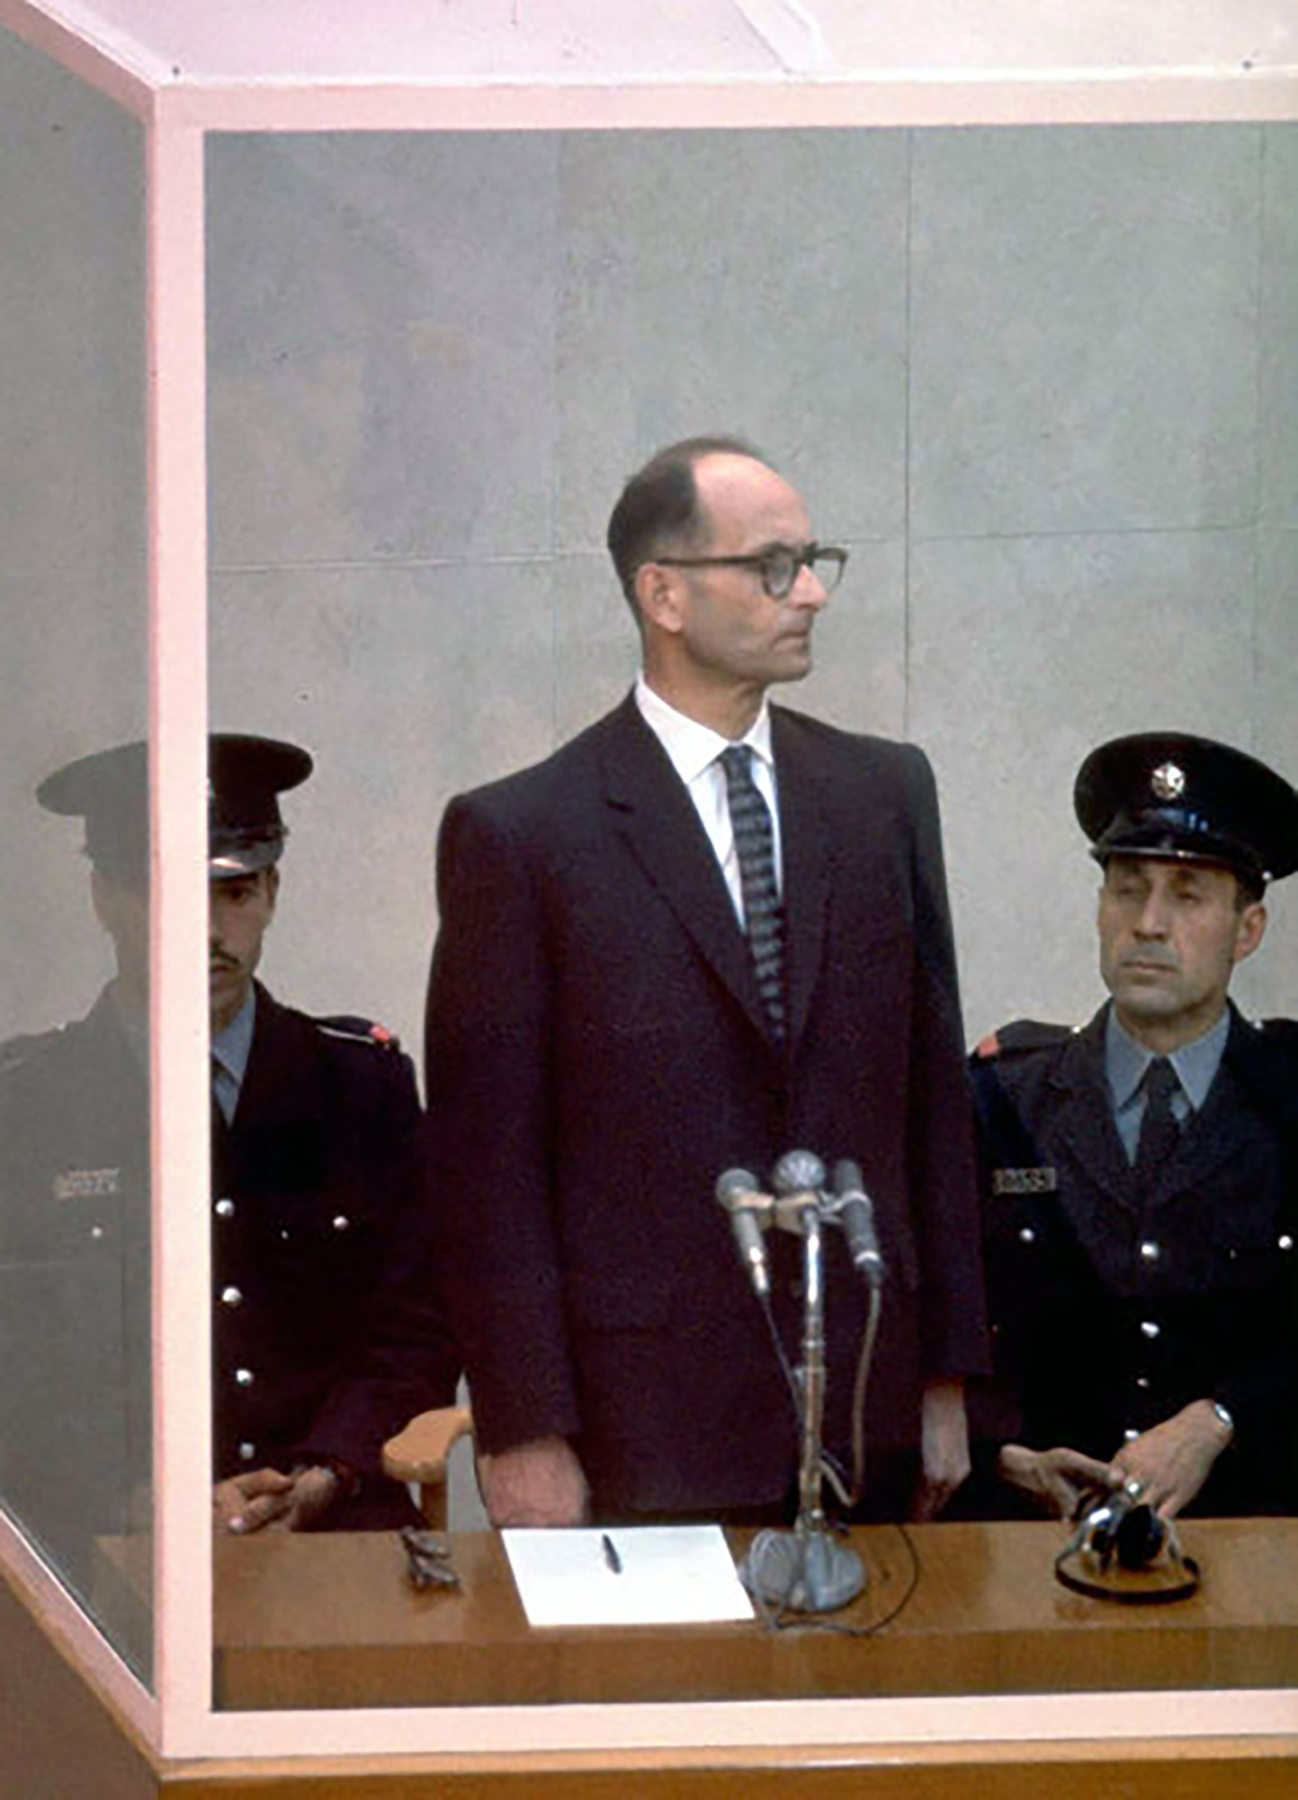 Adolf Eichmann Trial at Beit Ha'am in Jerusalem, Israel, 1961 Photo courtesy of Government Press Office